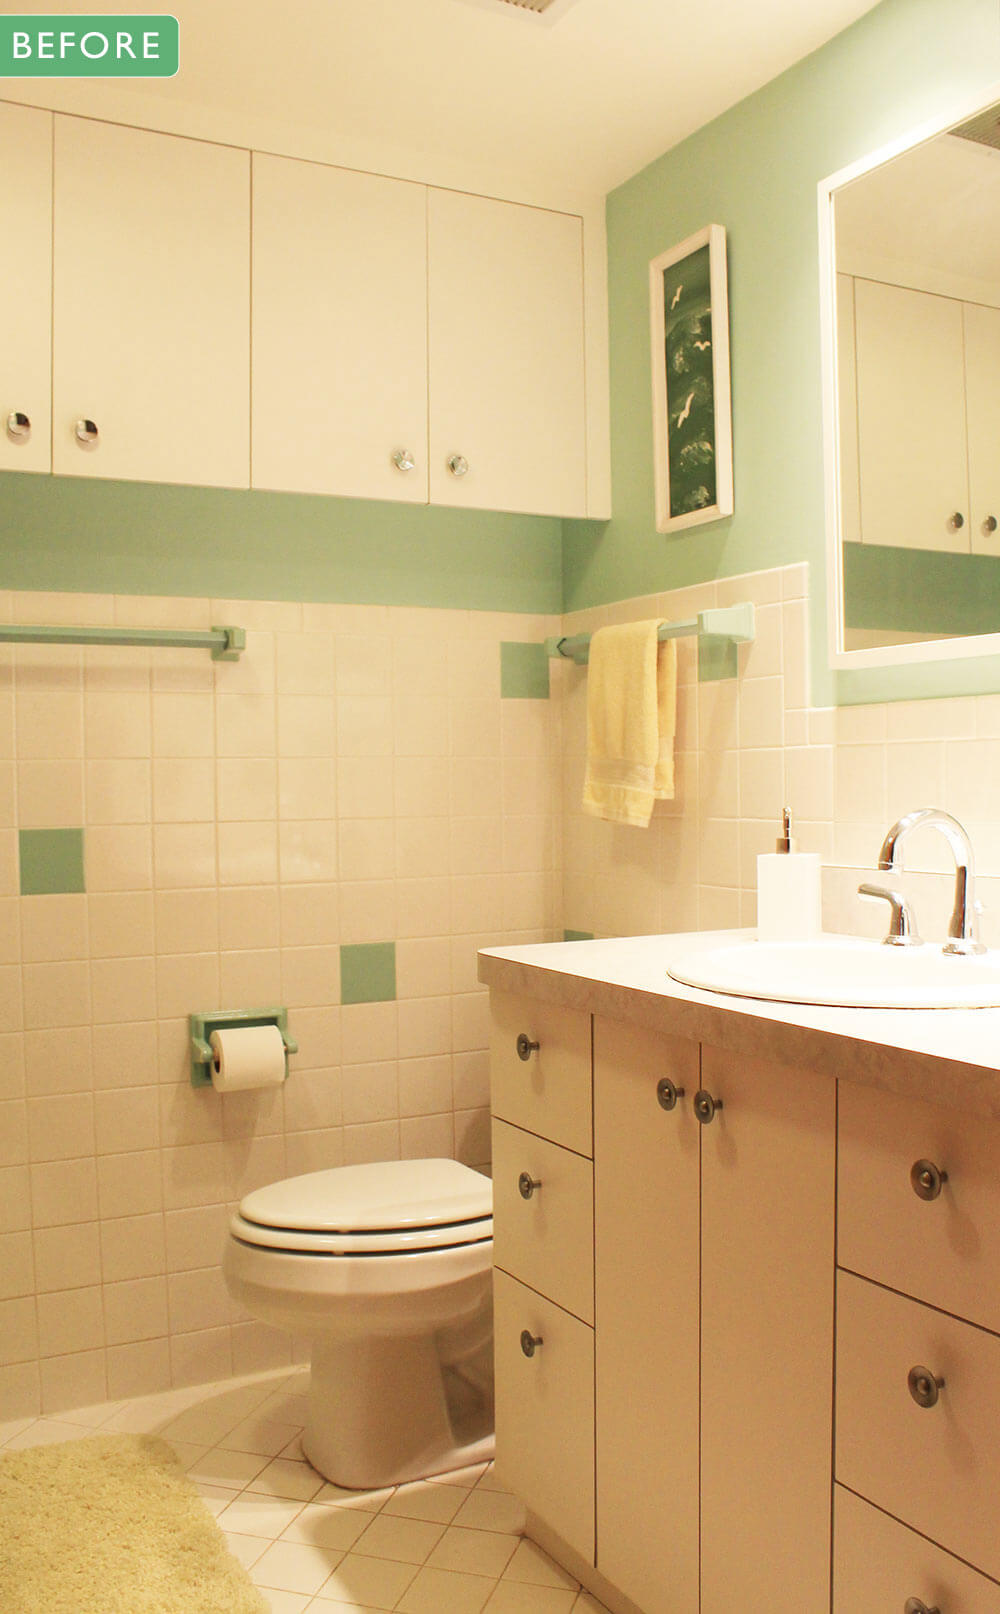 Delectable 60 1950s bathroom remodel before and after for 1960s bathroom design